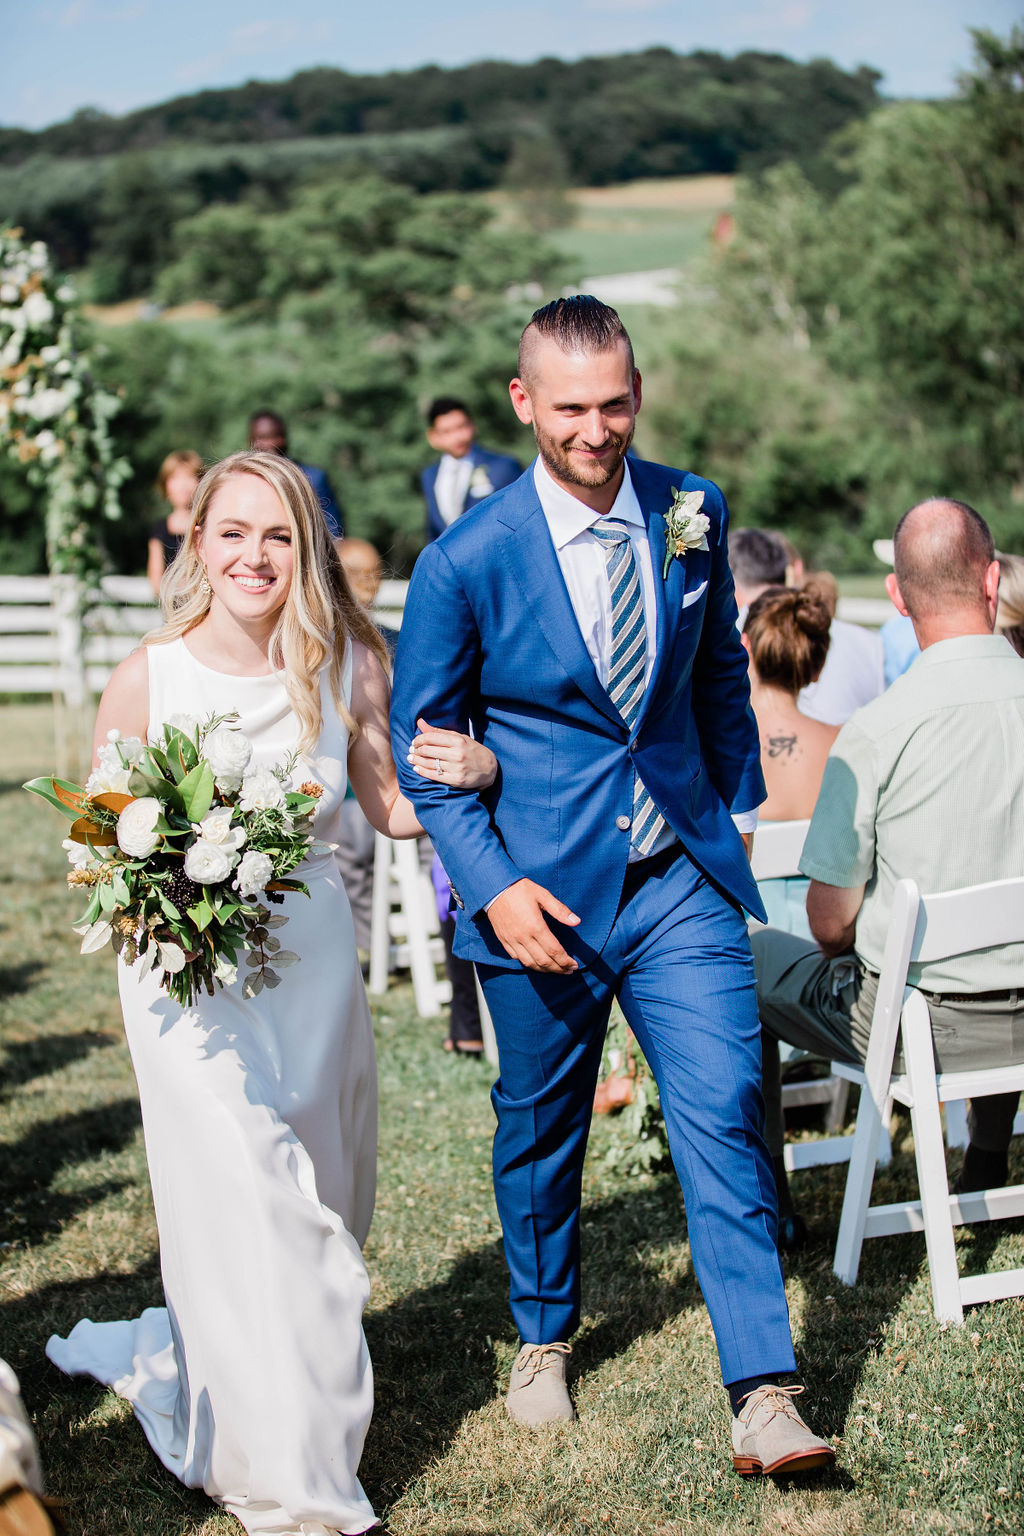 It's official! - Rachel & Patrick's beaming faces as they walk together as husband and wife for the first time is perfection!